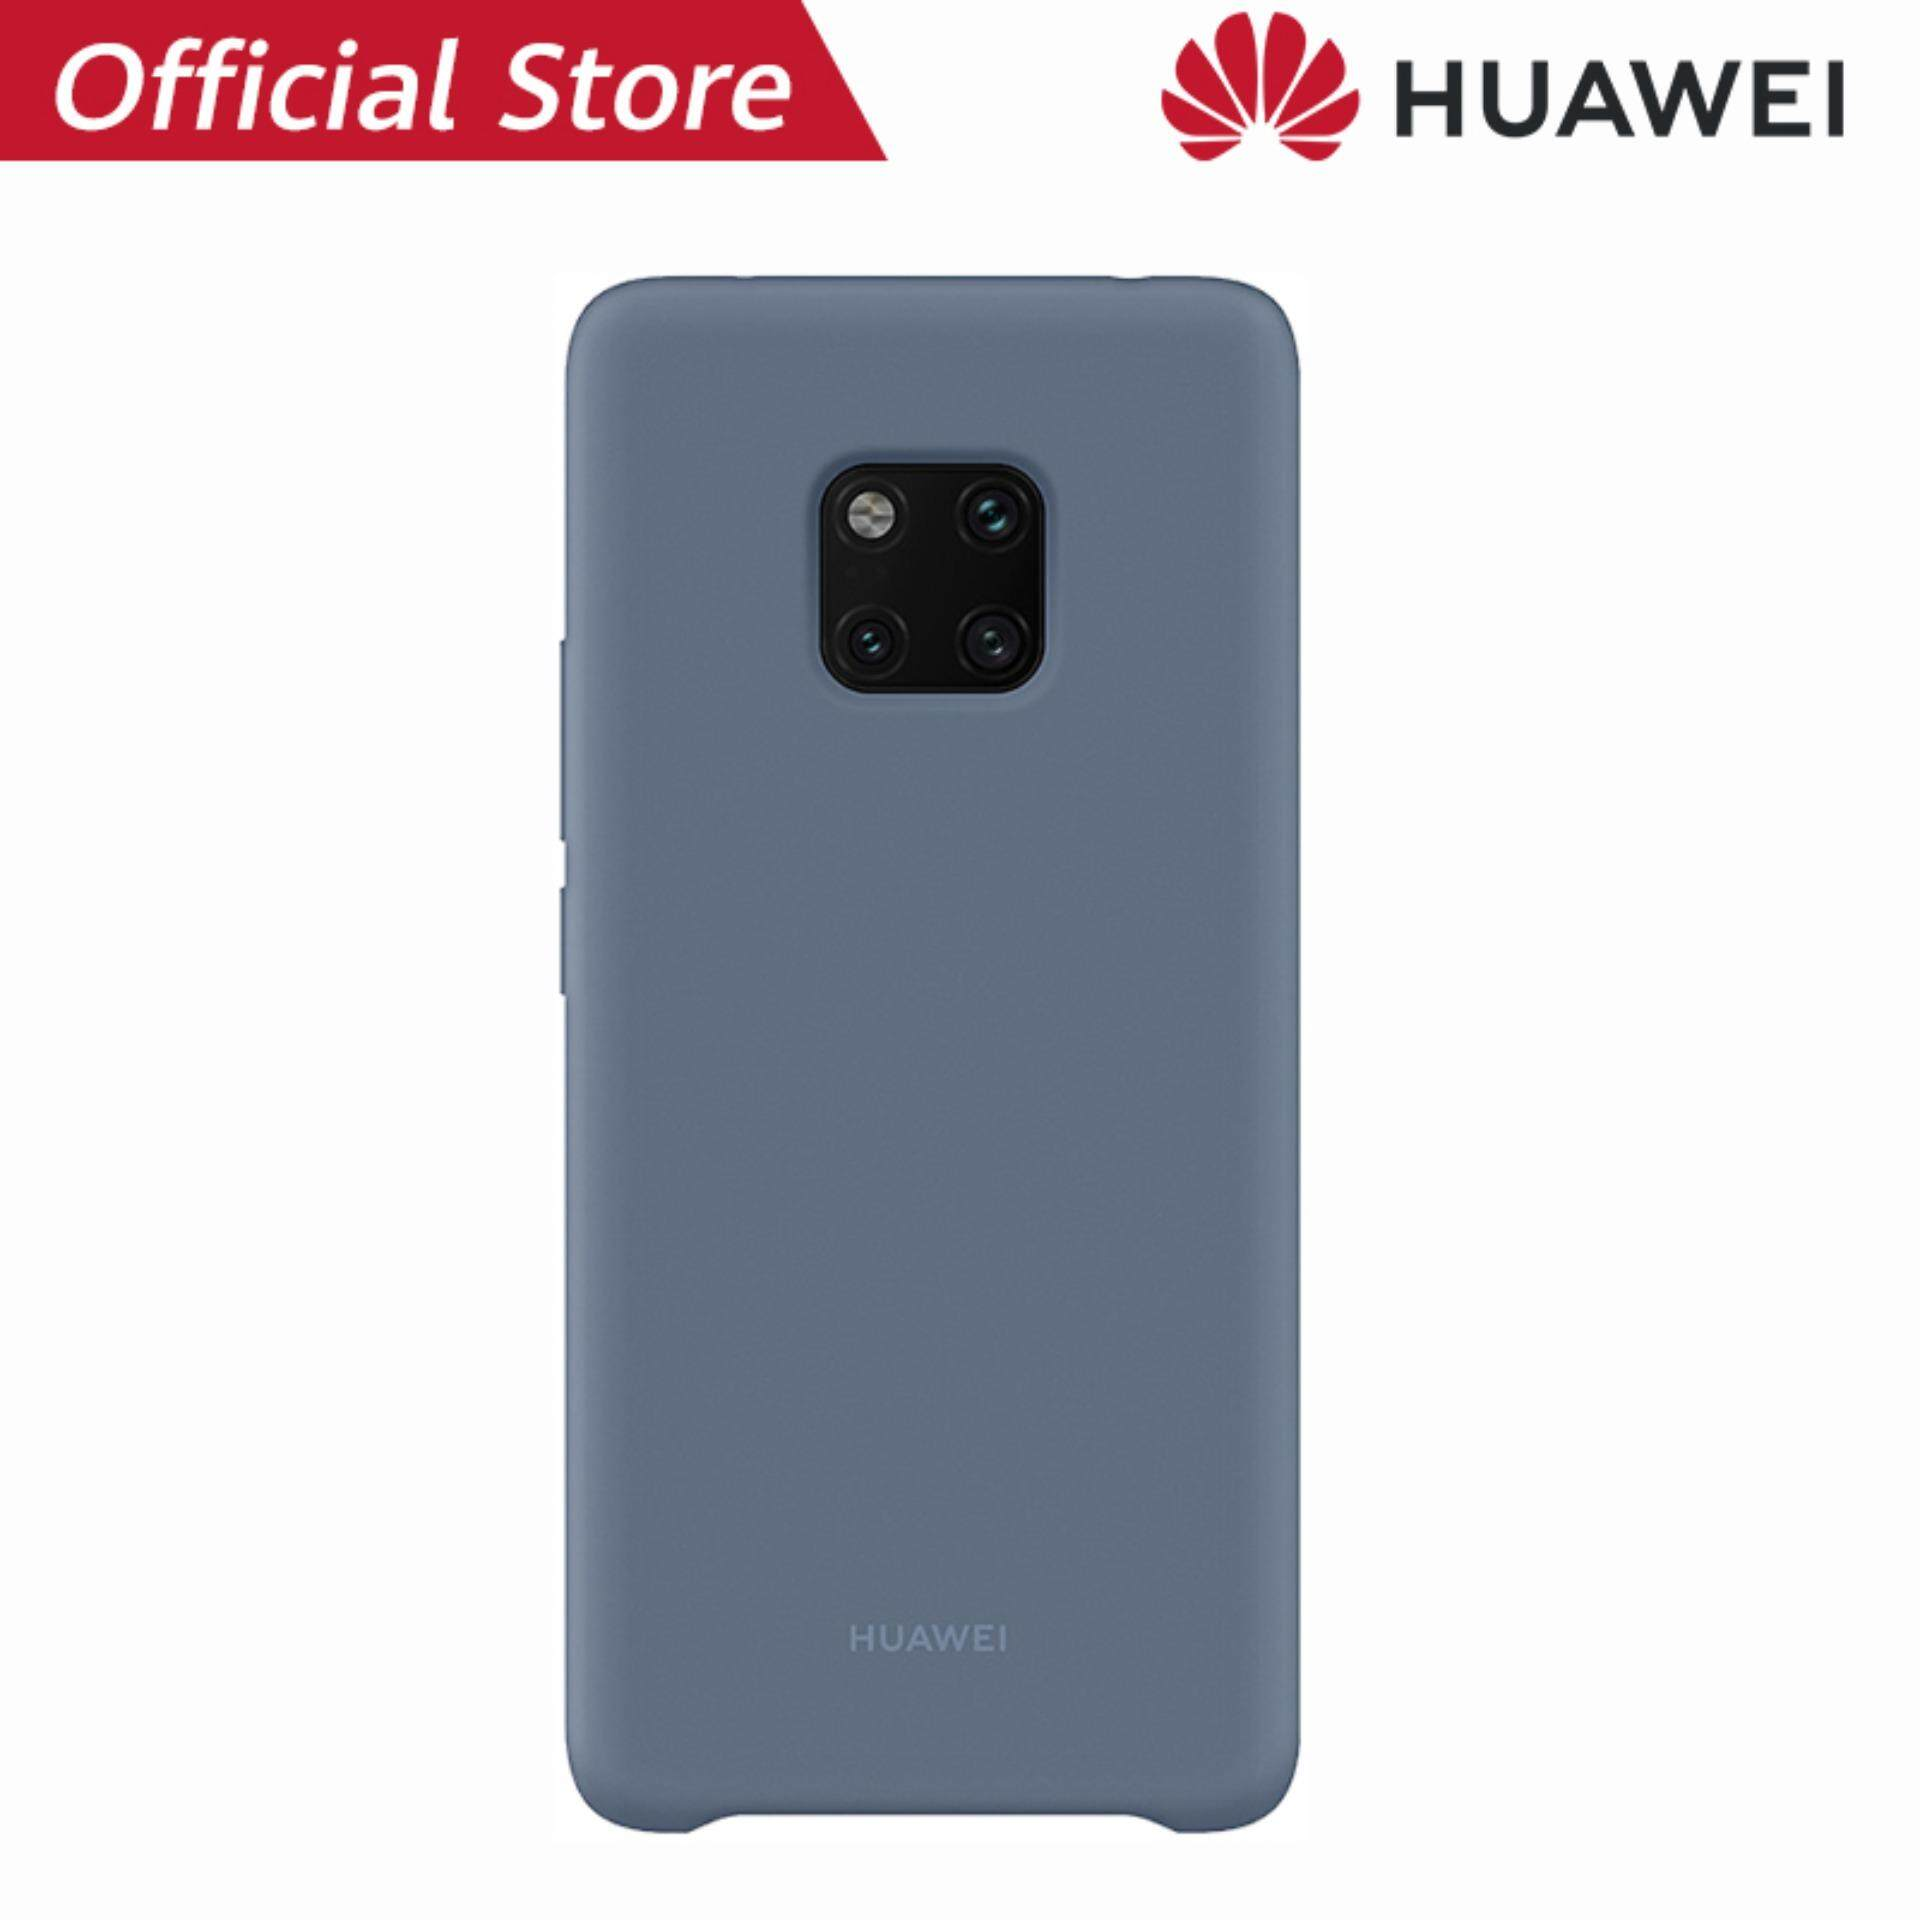 Huawei Mate 20 Pro Silicone Case สำหรับ Mate 20 Pro